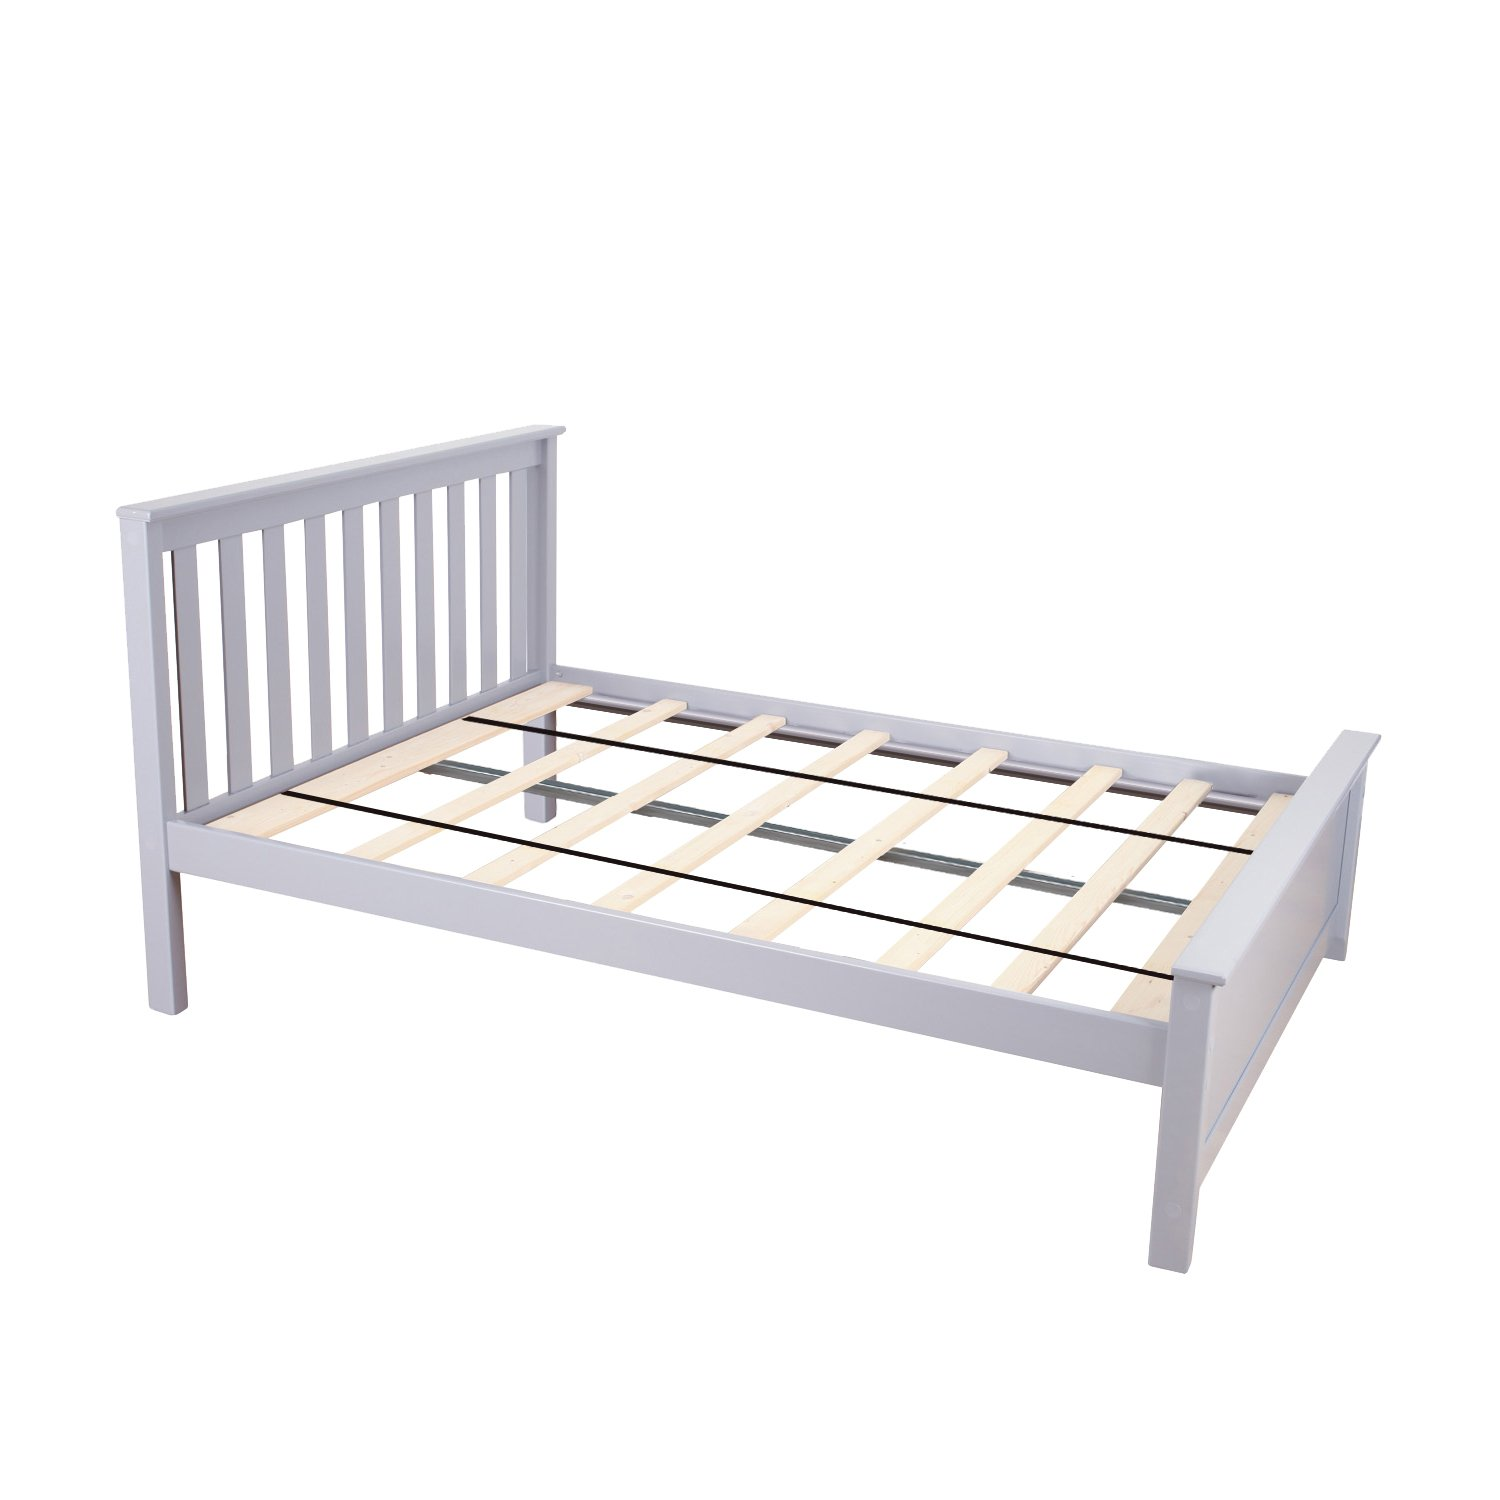 Max & Lily Solid Wood Full-Size Bed, Grey by Max & Lily